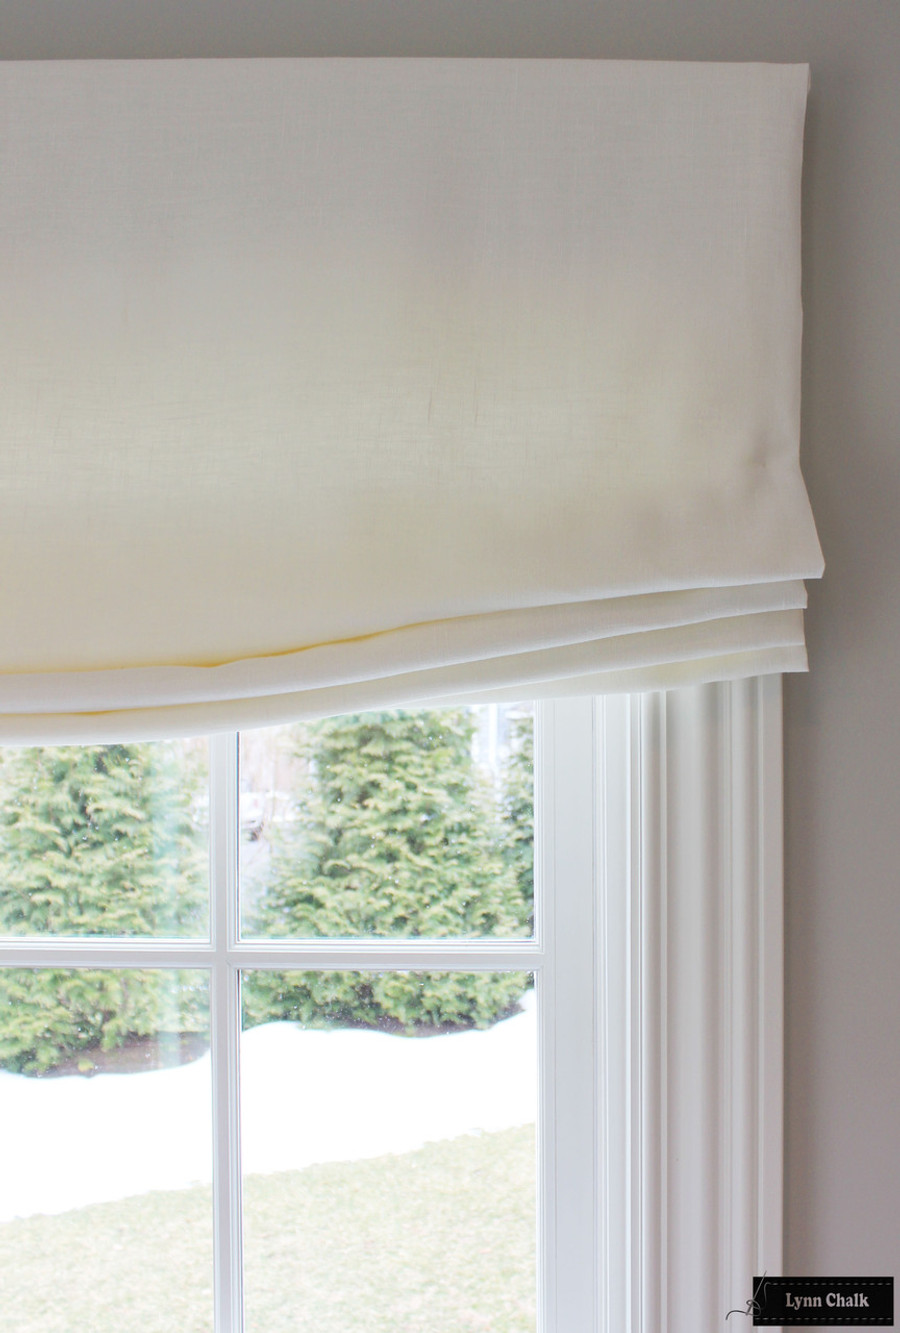 ... Relaxed Roman Shades And Drapes In Living Room (shown In Off White  Linen  ... Part 63